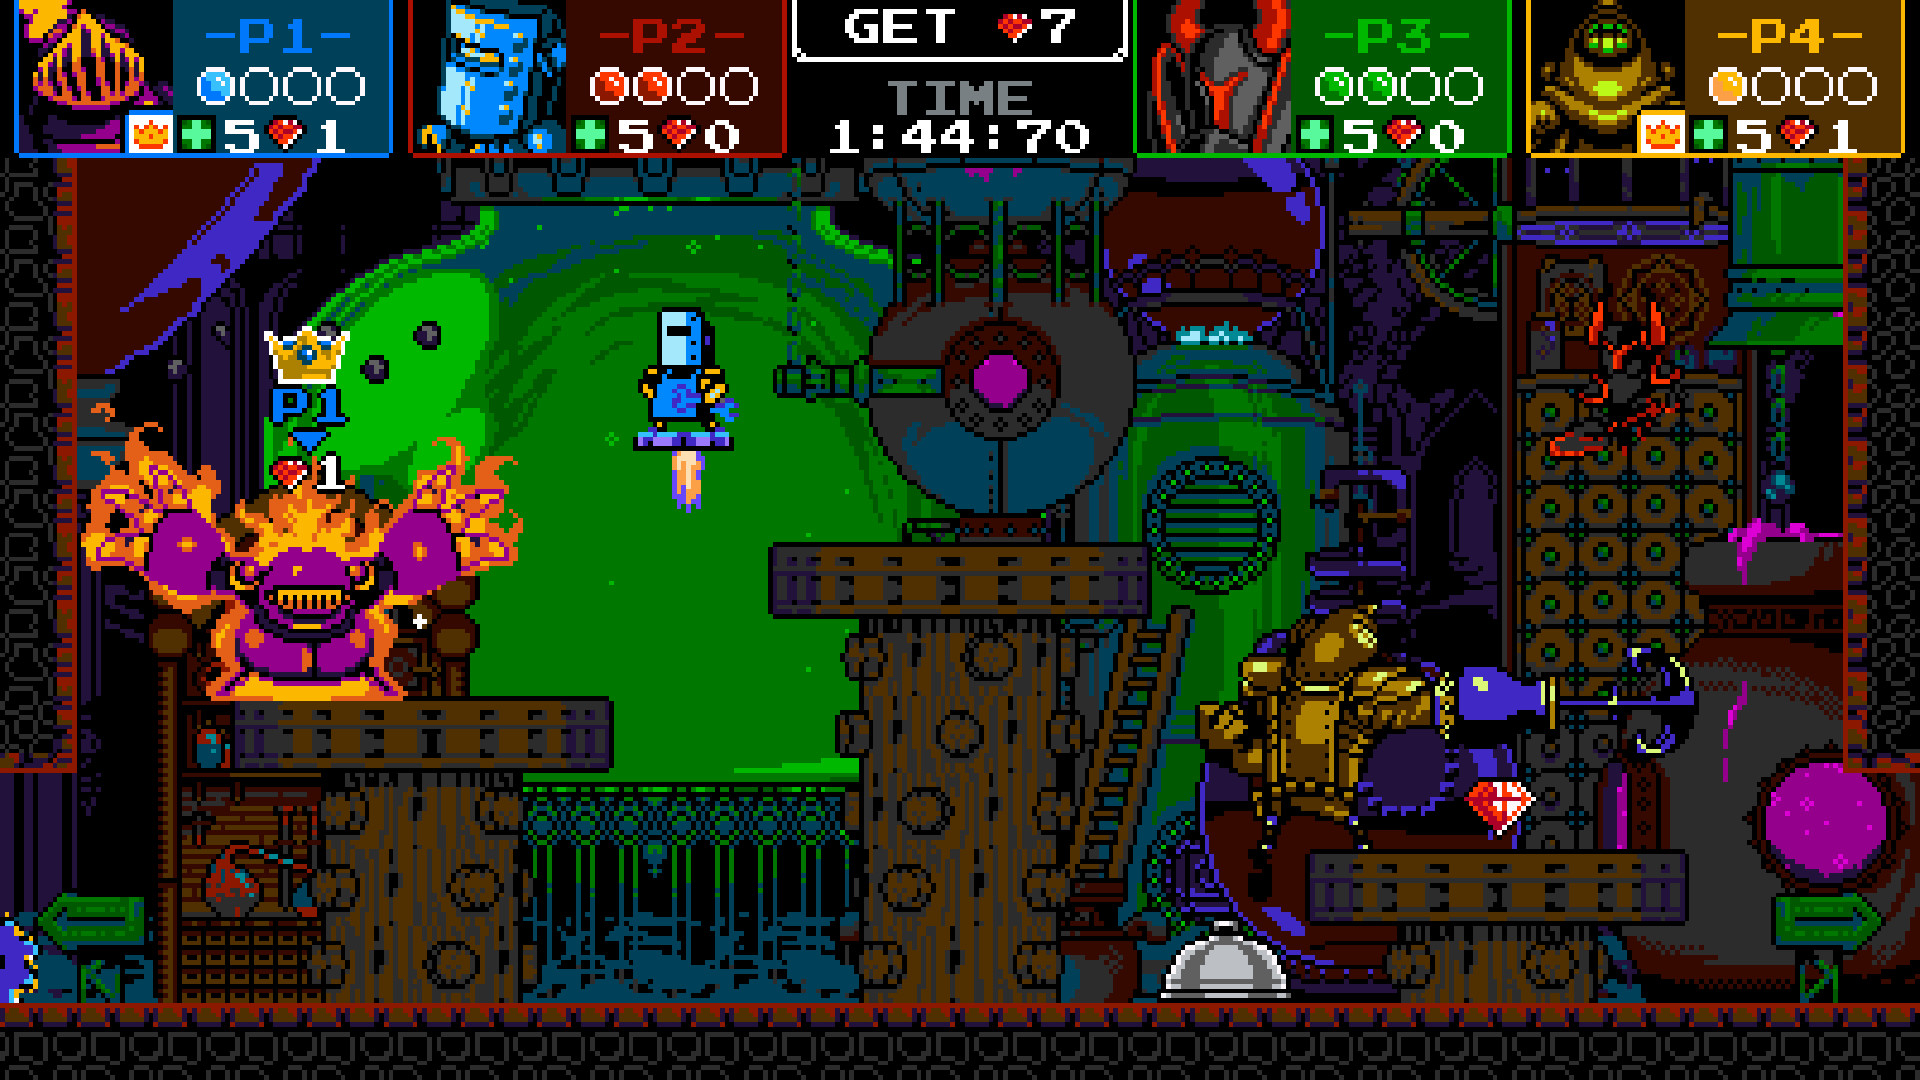 A screenshot from Shovel Knight: Showdown on PC